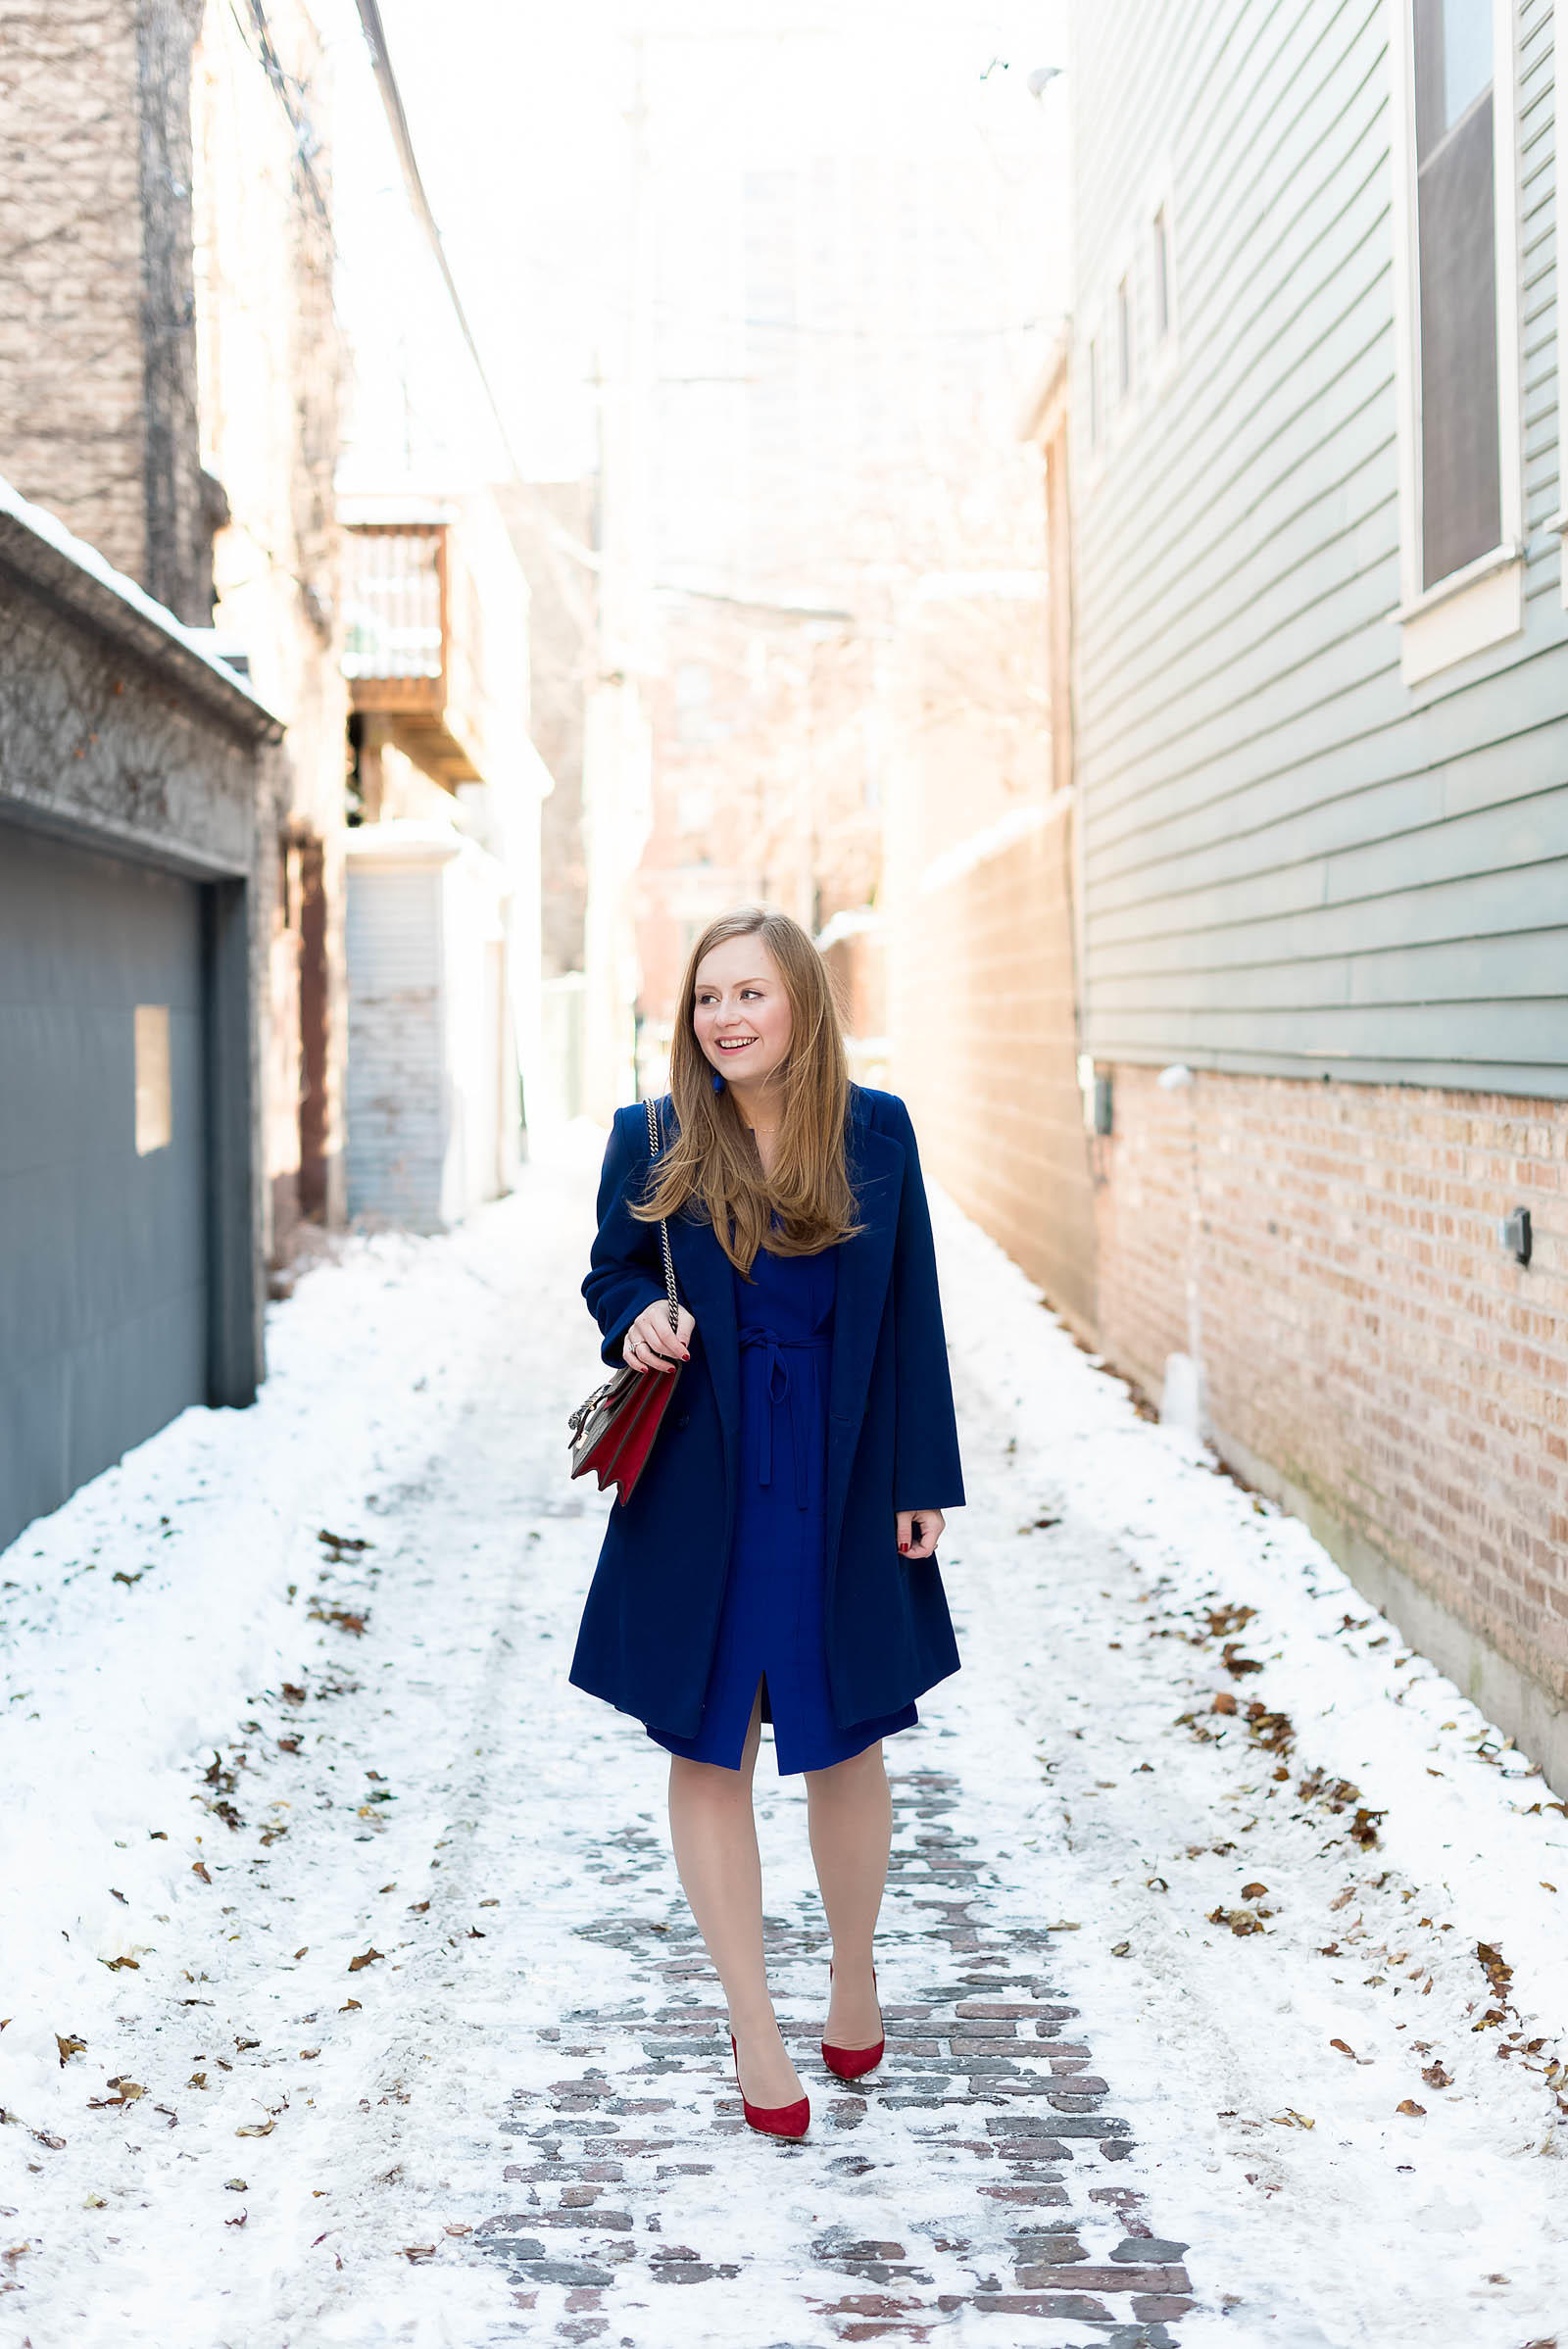 Cobalt Scarlet Winter Outfit Inspiration